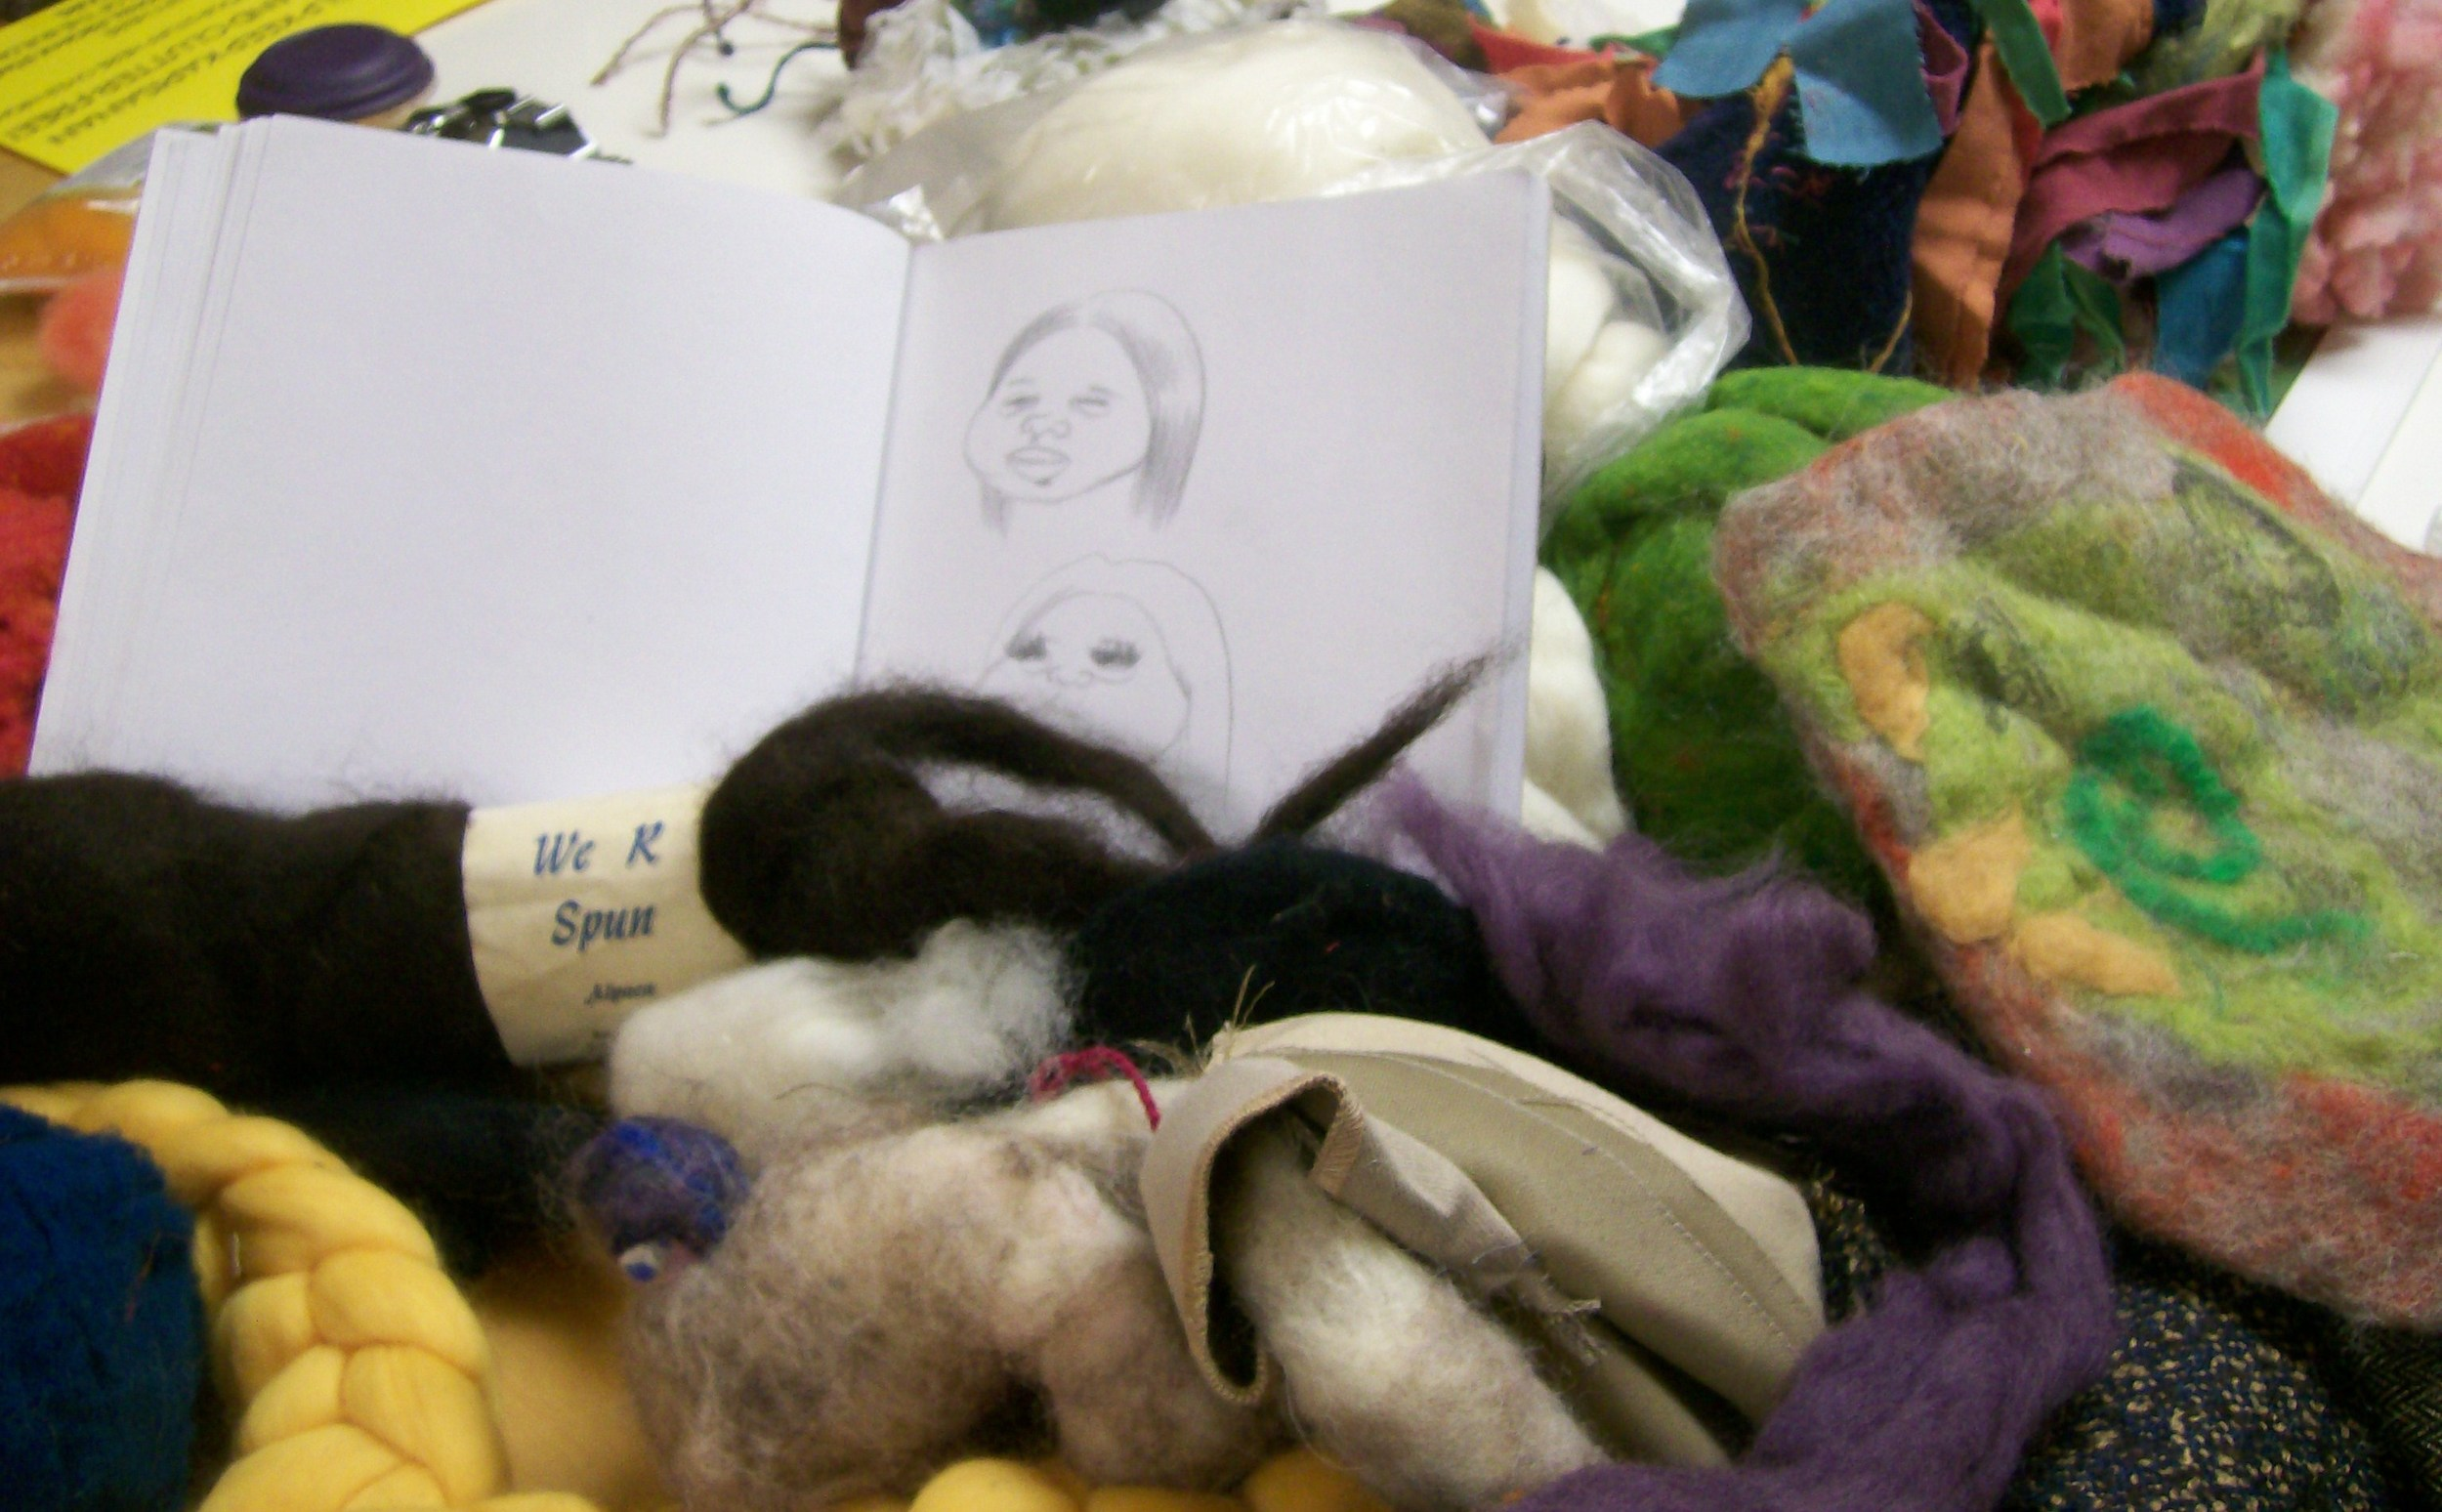 A big mess of felt, fabric and etc